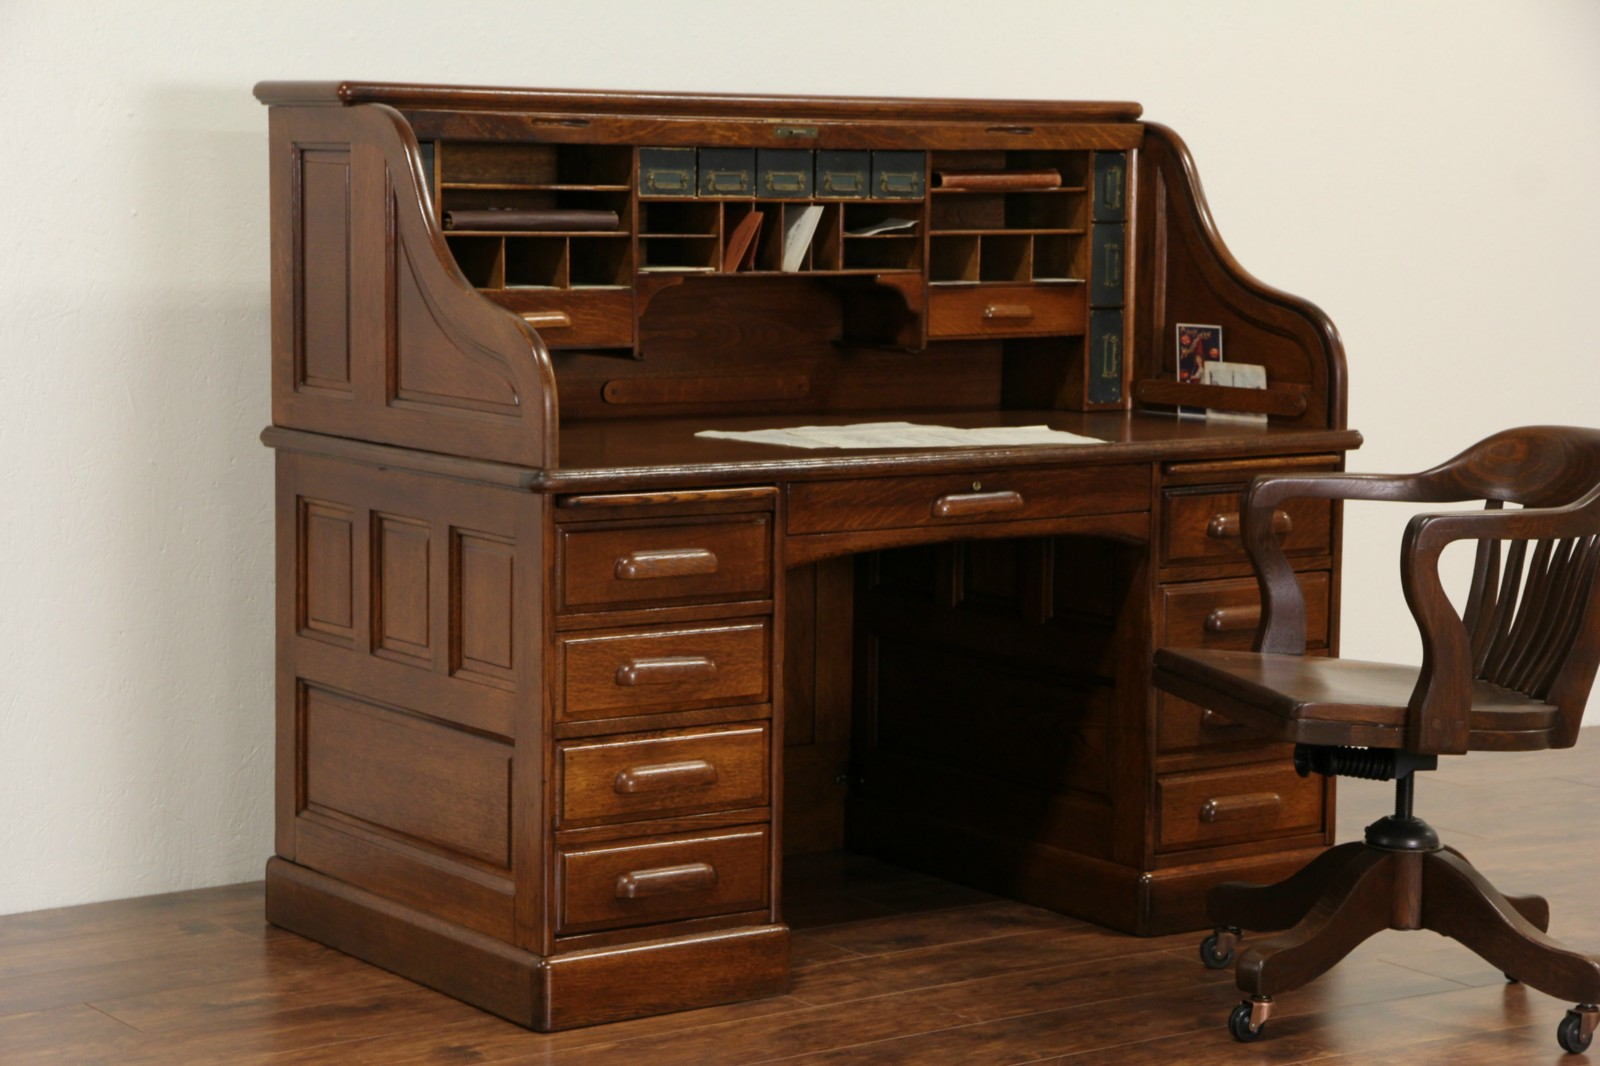 sold derby of boston oak antique 1900 rolltop desk s 87975